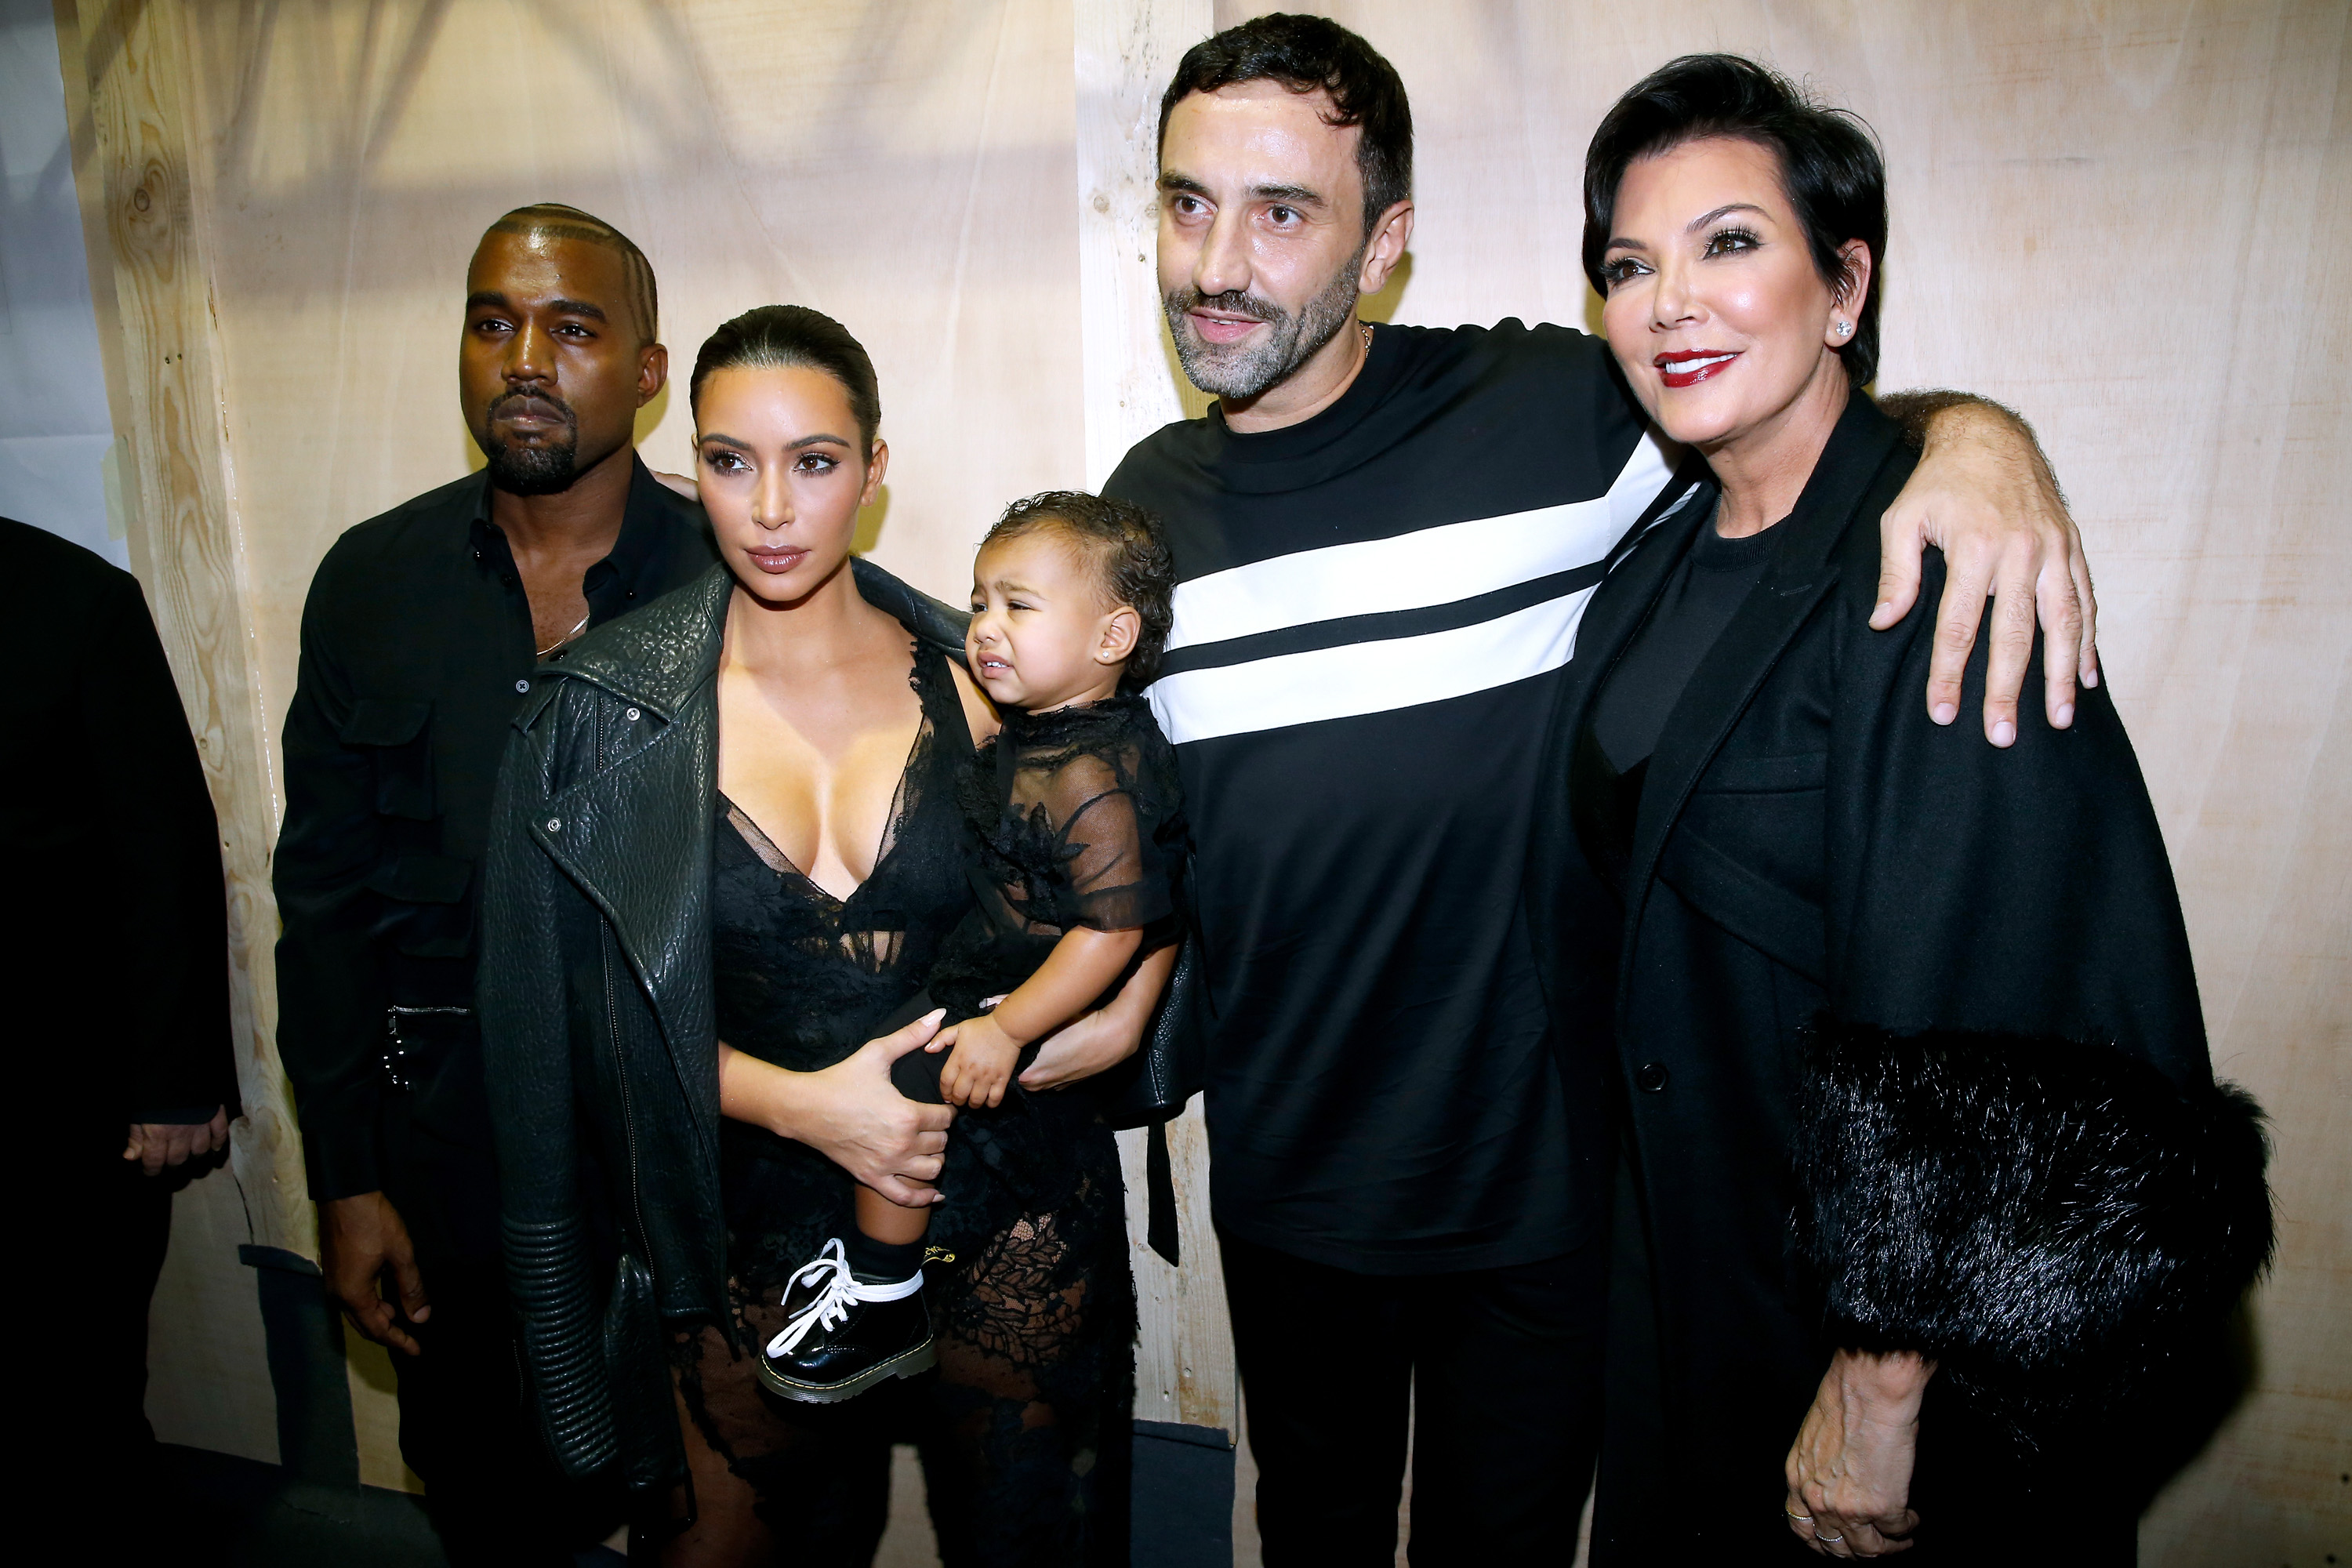 PARIS, FRANCE - SEPTEMBER 28: (L-R) Kim Kardashian, Kanye West, their daughter North West, Mother of Kim Kardashian, Kris Jenner and Fashion designer Riccardo Tisci pose backstage after the Givenchy show as part of the Paris Fashion Week Womenswear Spring/Summer 2015 on September 28, 2014 in Paris, France. (Photo by Bertrand Rindoff Petroff/French Select/Getty Images)